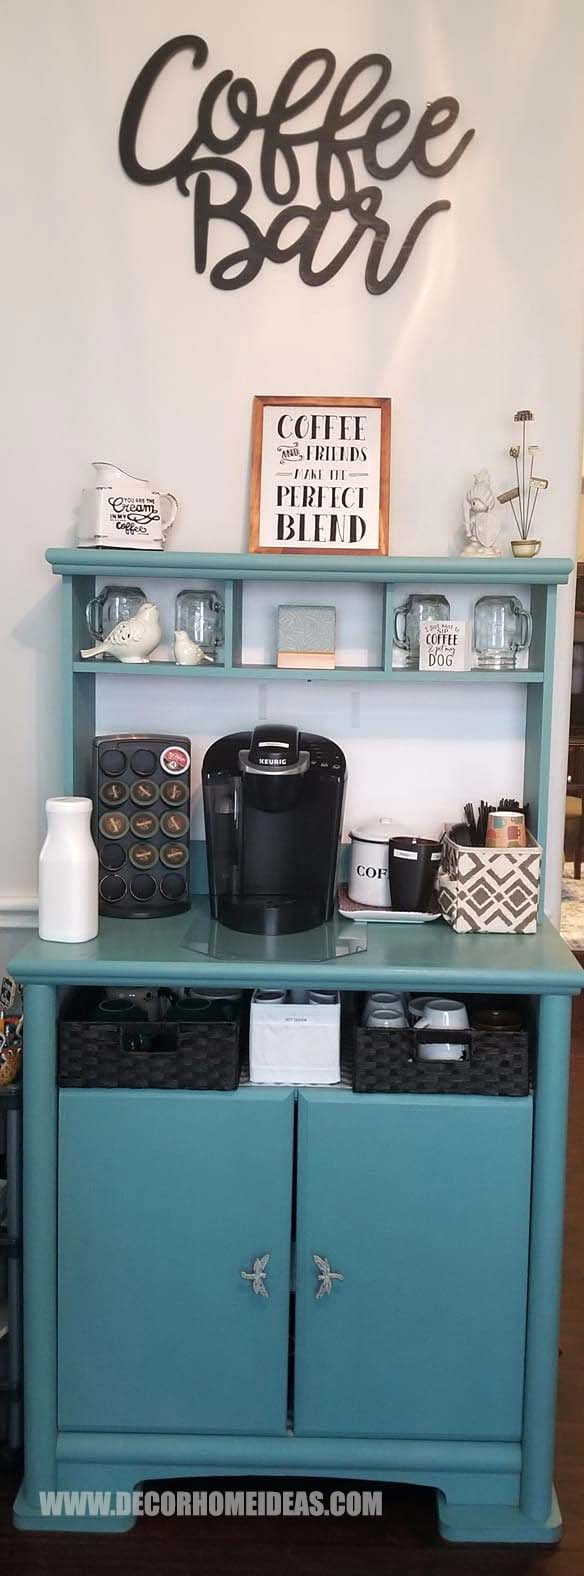 Small Coffee Bar #coffee #bar #decorhomeideas